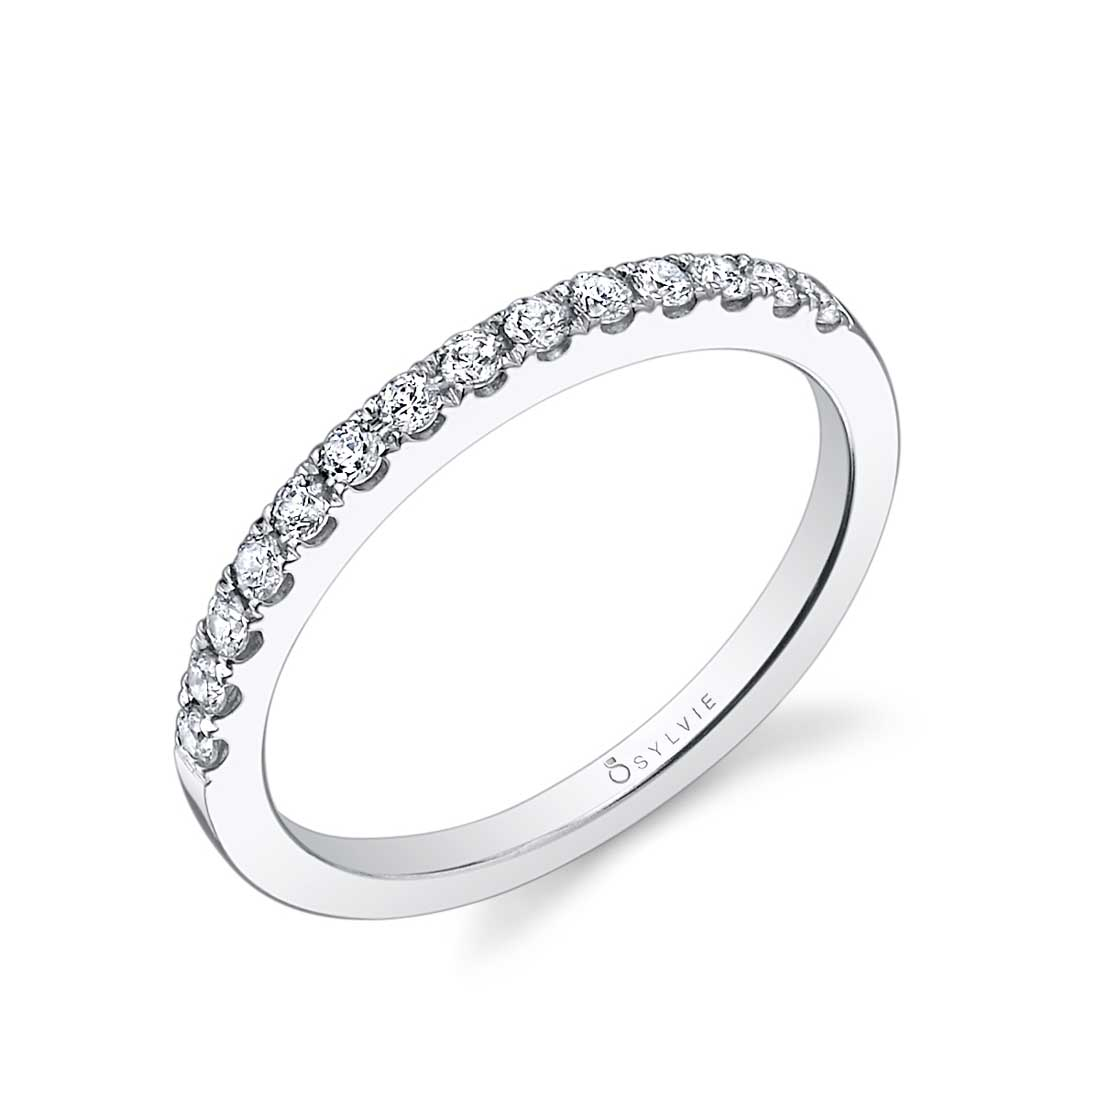 Petite Princess Cut Halo Engagement Ring_SY697-0033/A4W